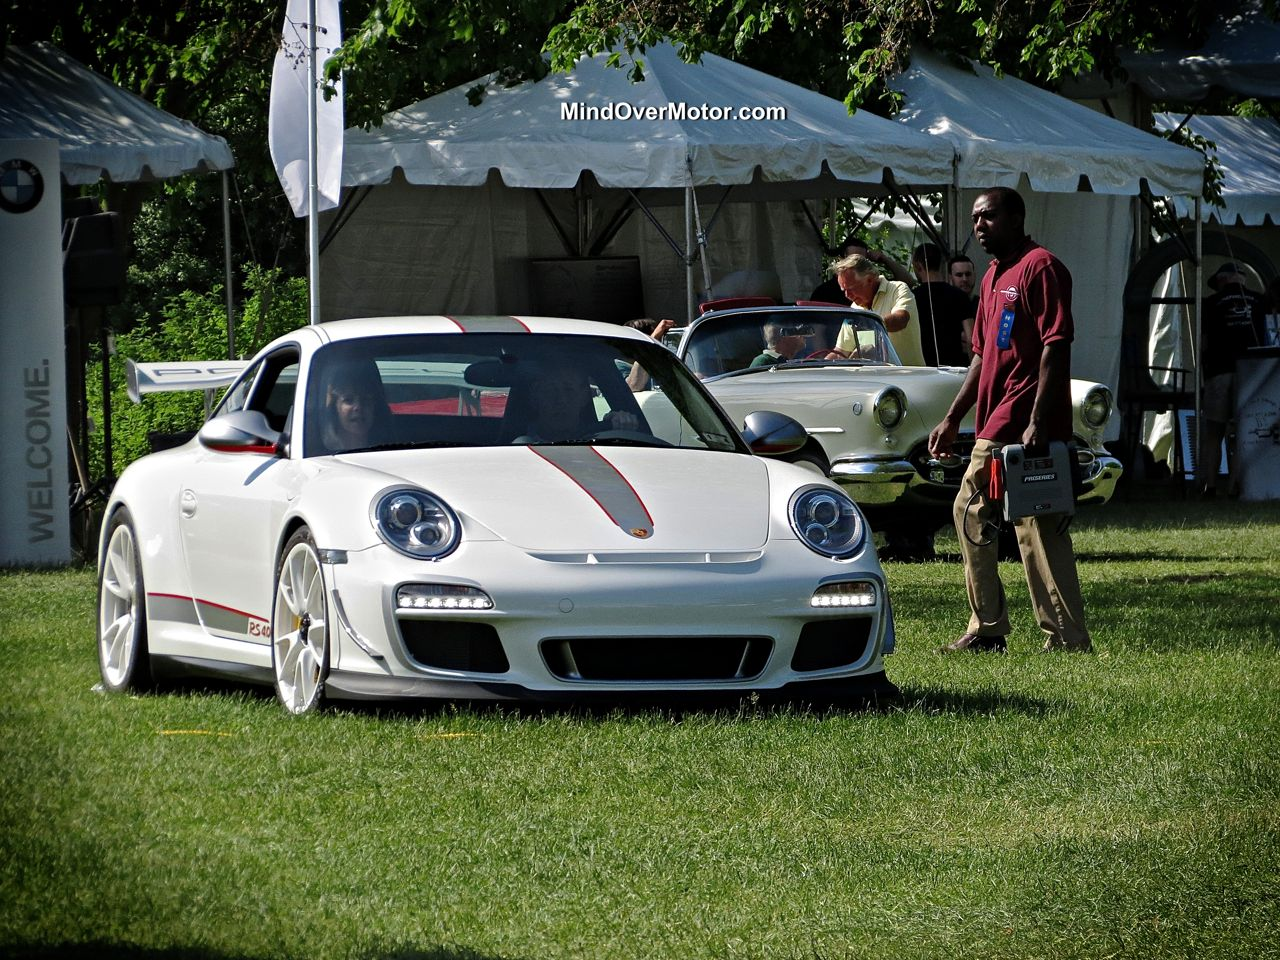 Porsche 997 GT3 RS 4.0 at the Greenwich Concours